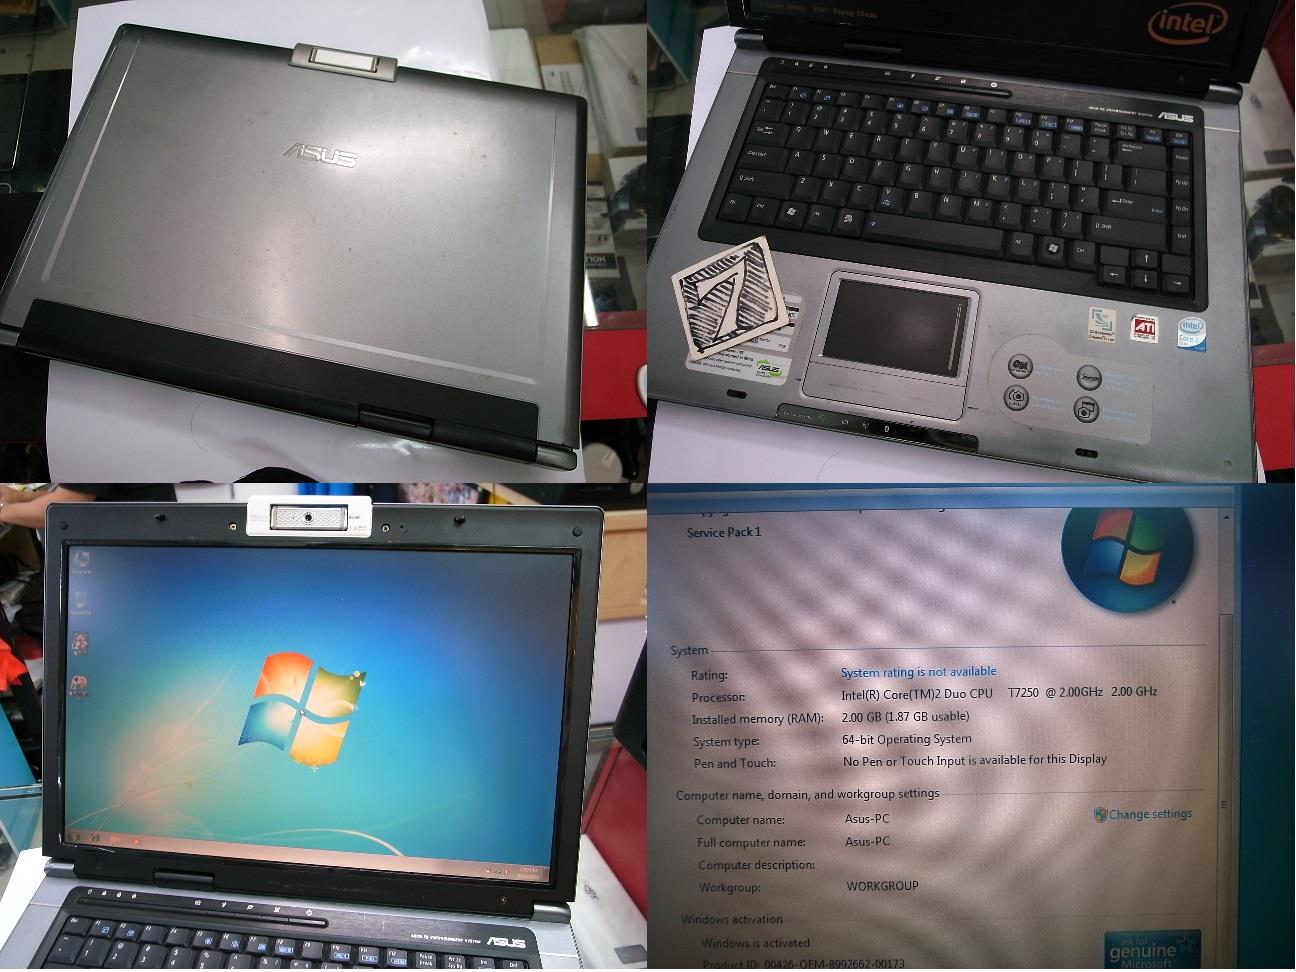 Asus F5RL 2.53GHz DVD Camera Laptop Notebook Rm530